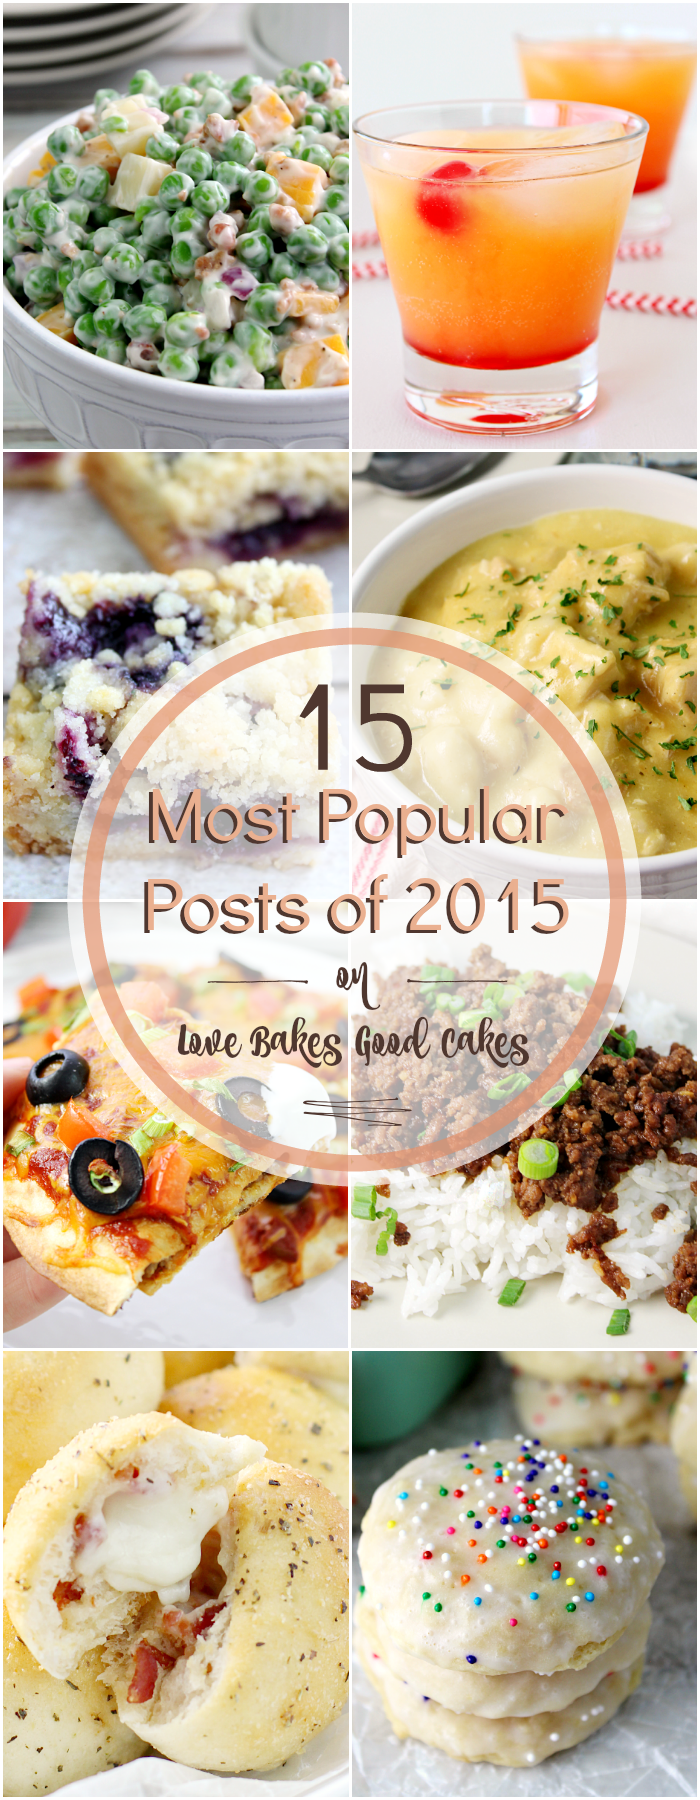 The 15 Most Popular Posts of 2015 on Love Bakes Good Cakes